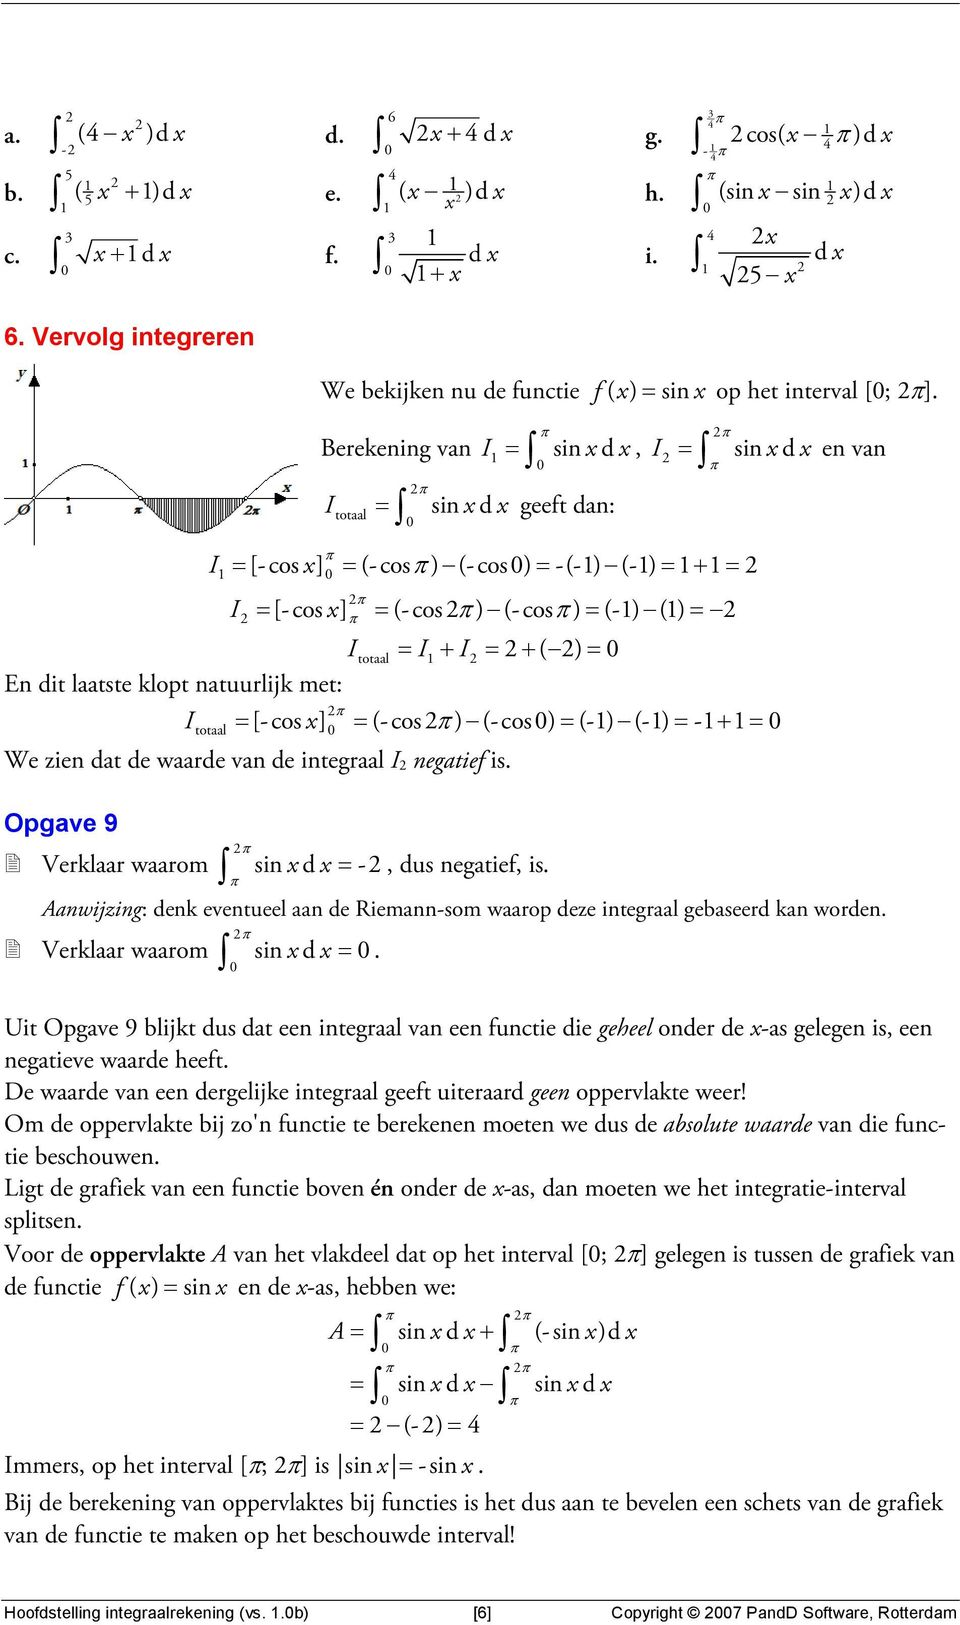 ntuurlijk met: totl I = [-cos ] = (-cos ) (-cos) = (-) (-) = -+ = We zien dt de wrde vn de integrl I negtief is. Opgve 9 Verklr wrom sin d = -, dus negtief, is.